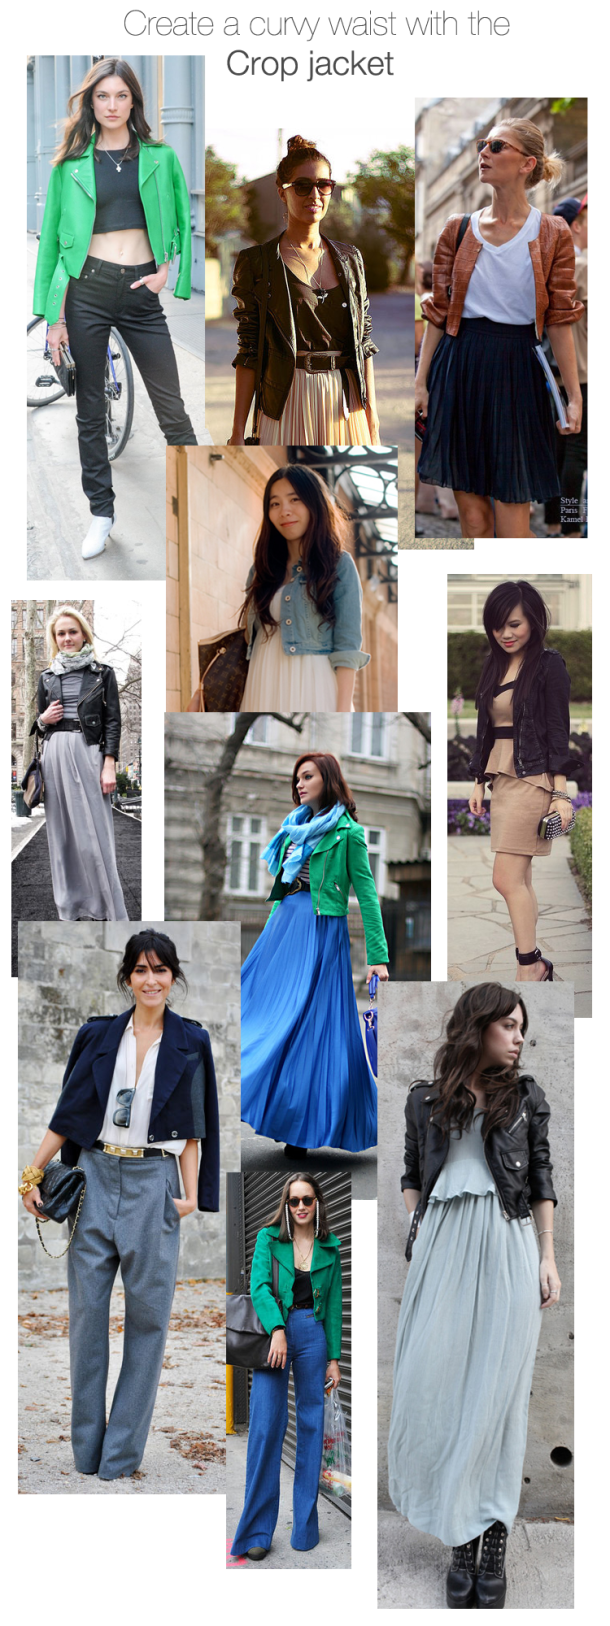 define-a-waist-with-a-crop-jacket-for-thepear-shaped-and-the-hourglass-shaped-women